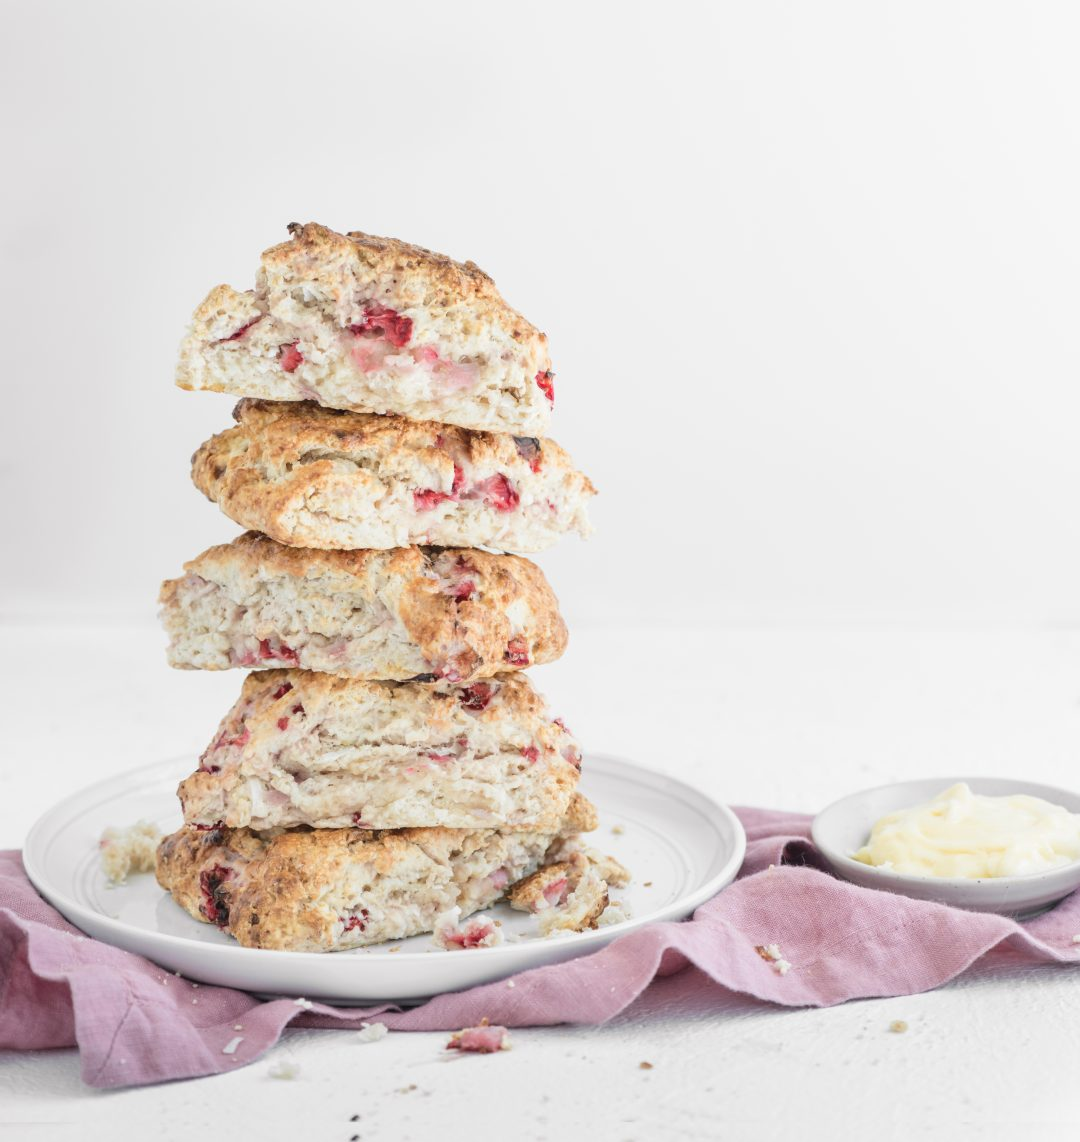 strawberry and coconut scone stack